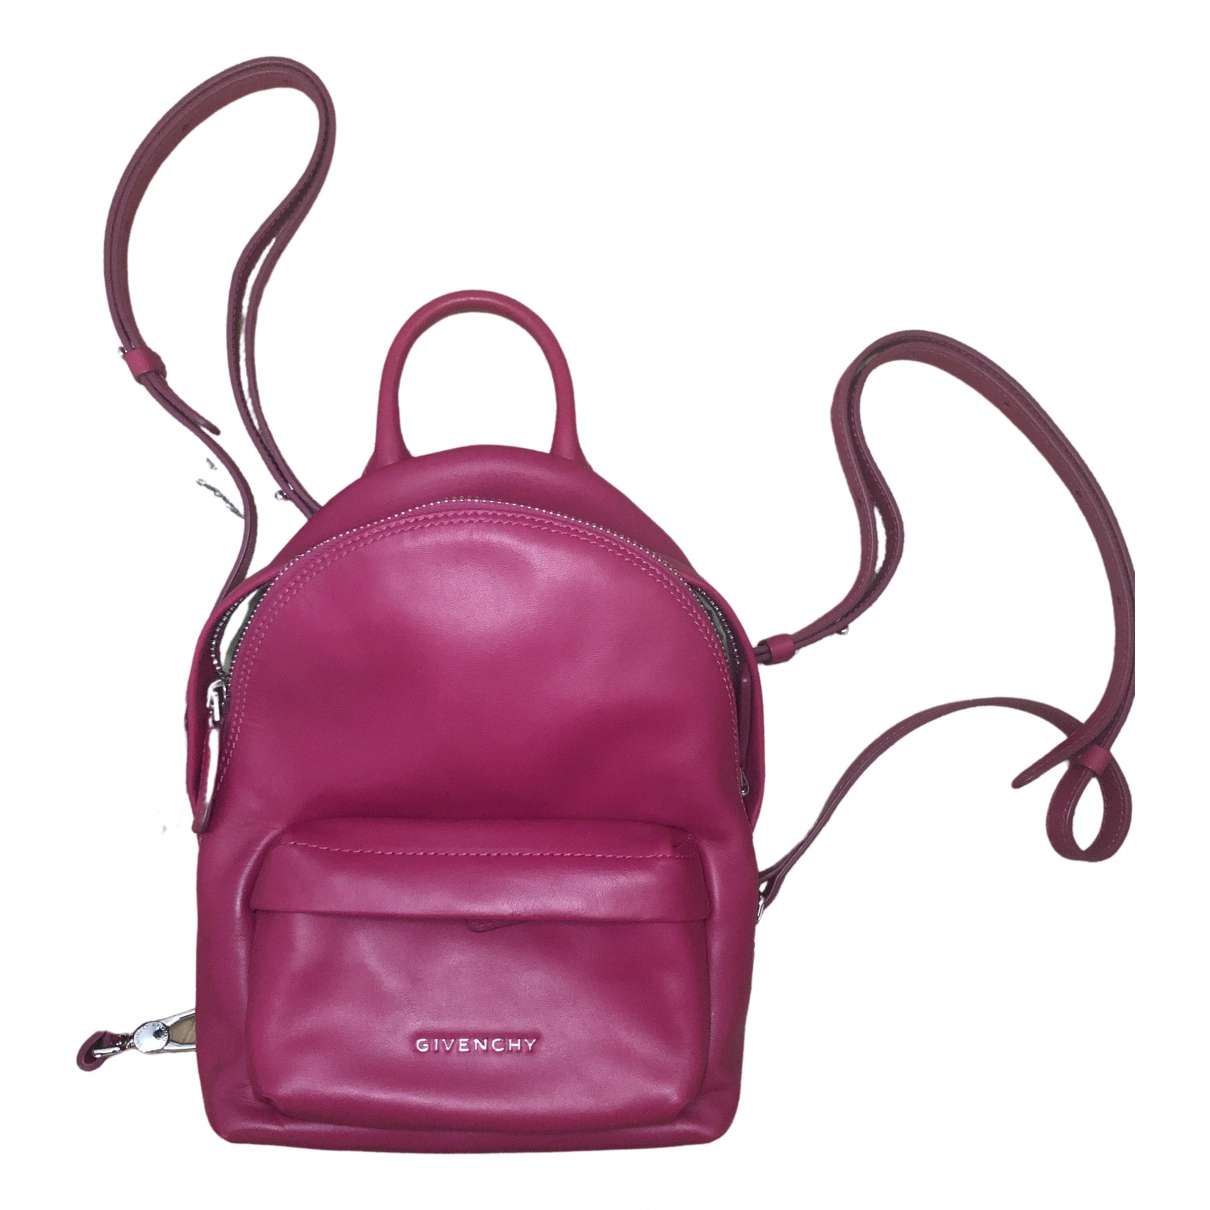 Givenchy \N Pink Leather backpack for Women \N